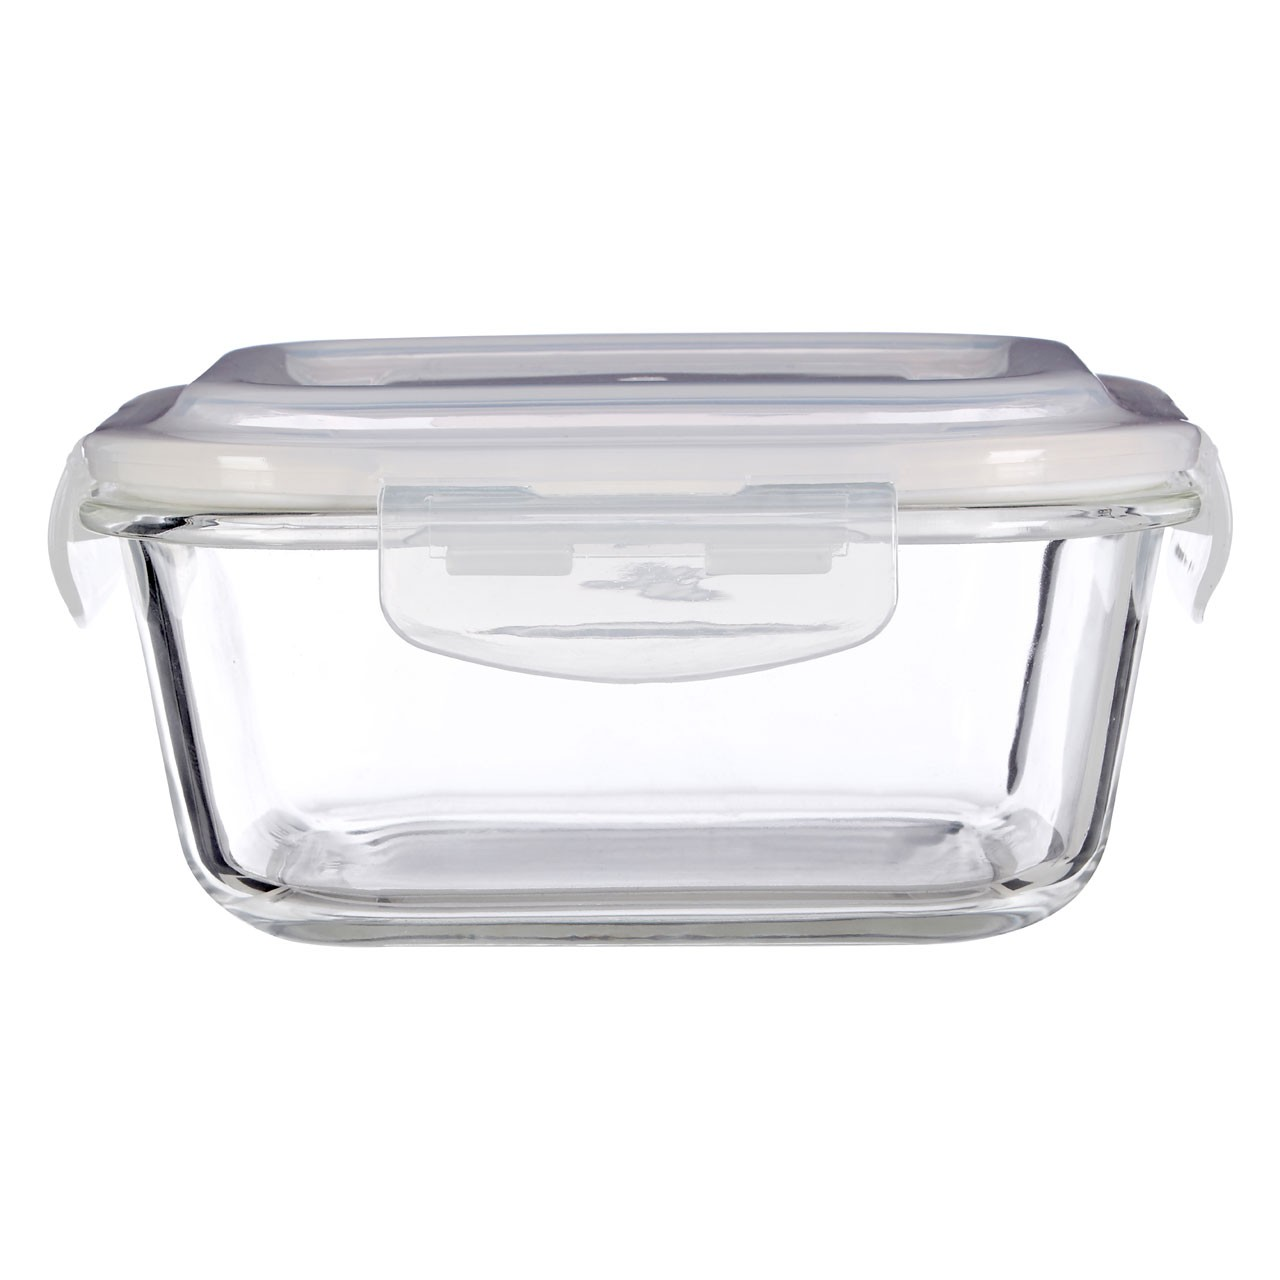 Prime Furnishing Freska Square Glass Container, 800 ml